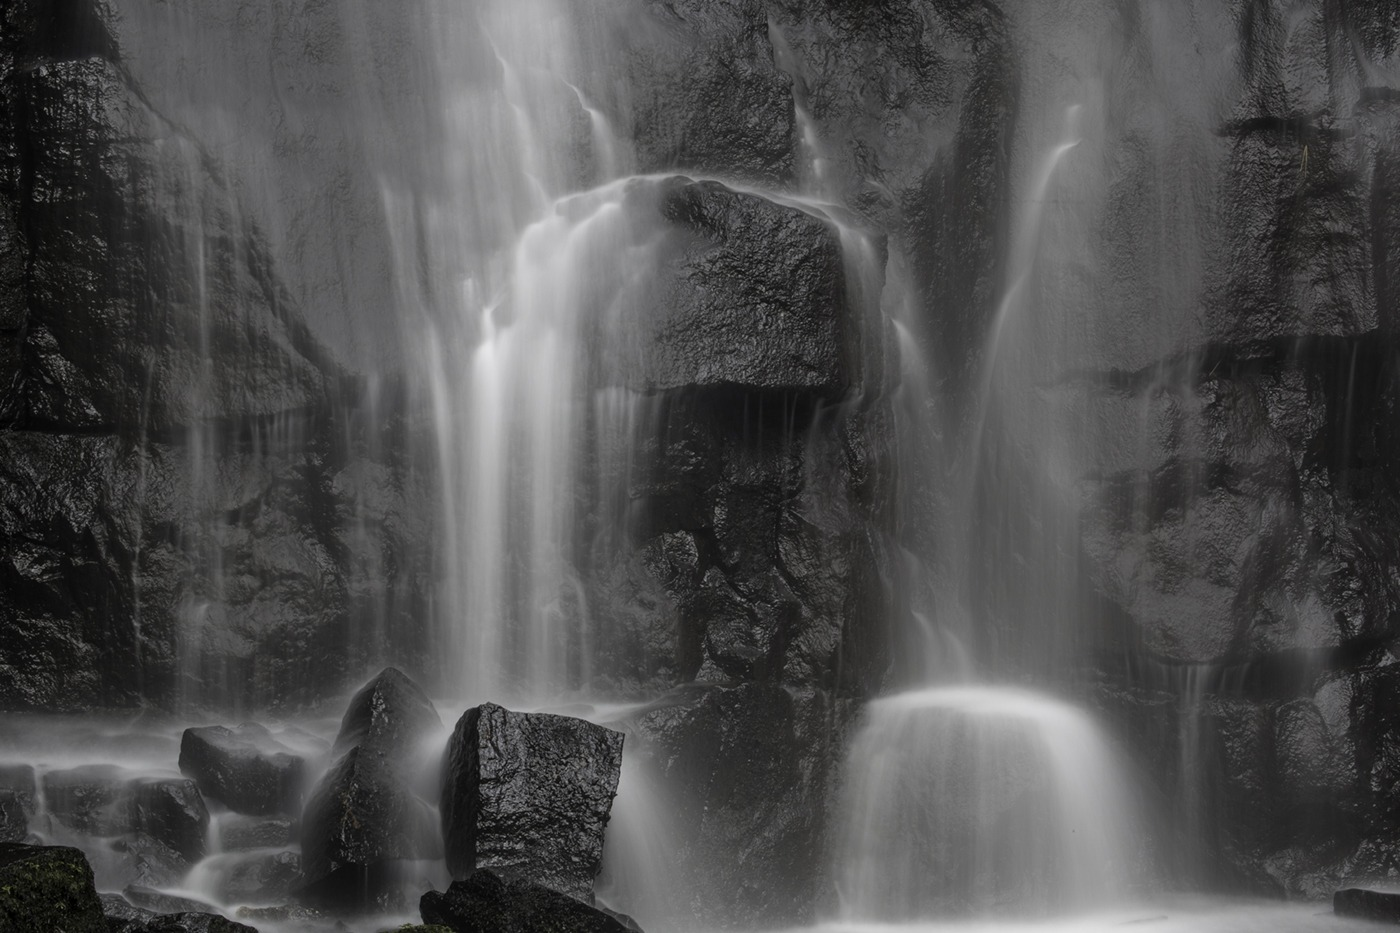 Tony Worobiec: The Intimate Landscape - Waterfalls (Part 6)